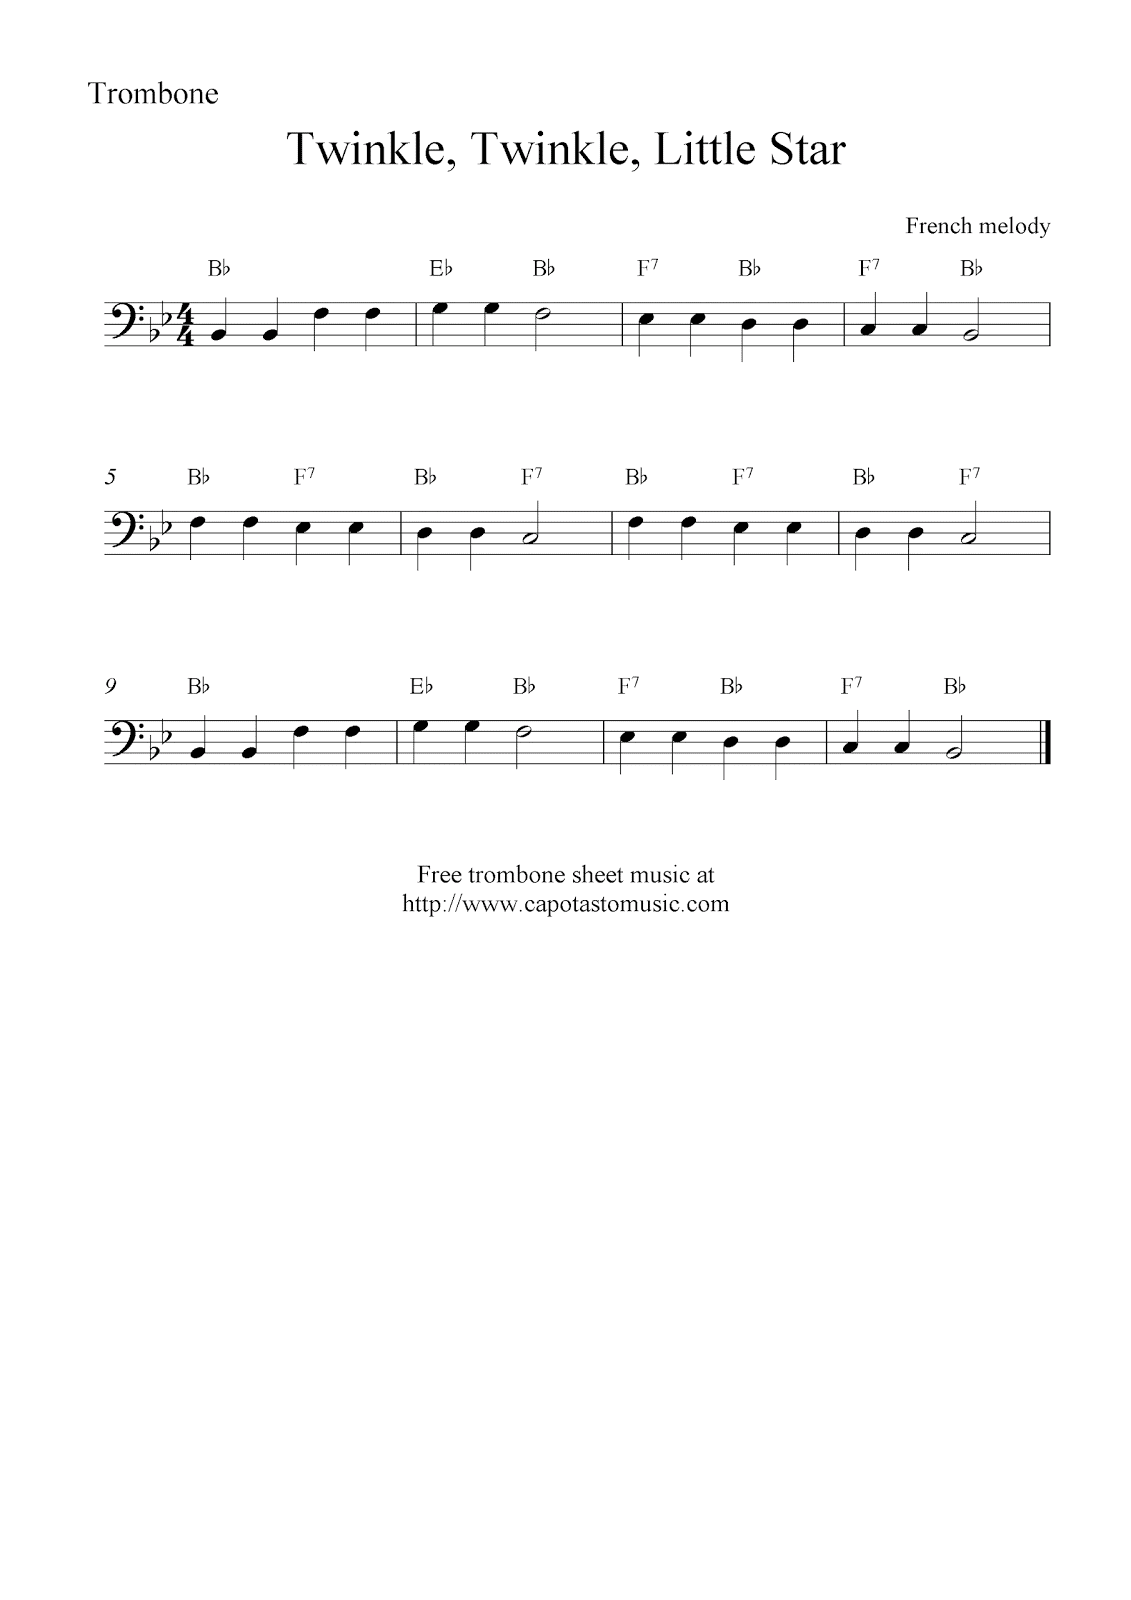 photograph relating to Free Printable Trombone Sheet Music titled Twinkle, Twinkle, Very little Star, totally free trombone sheet tunes notes